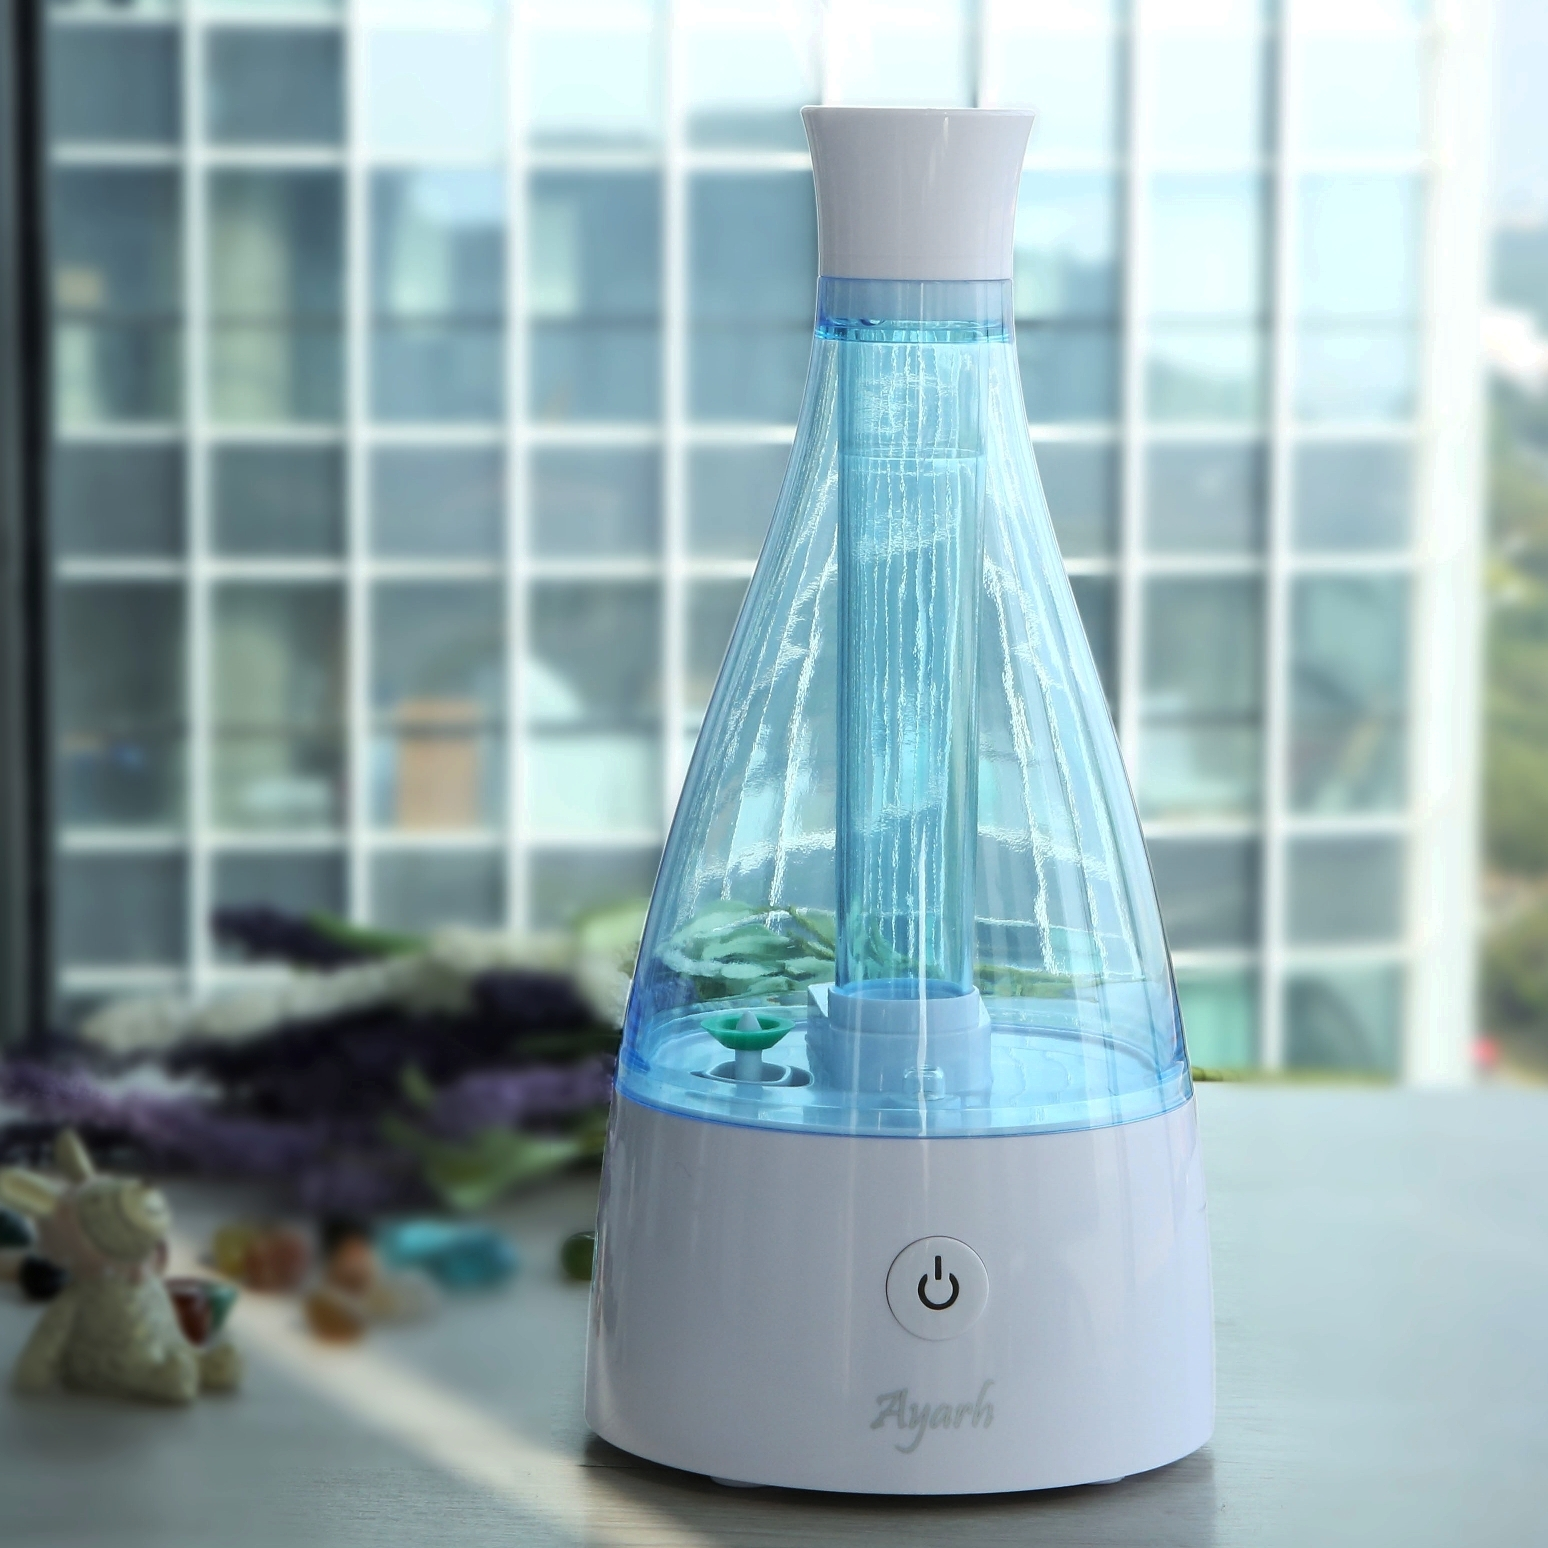 Ayarh Ultrasonic Mini Humidifier